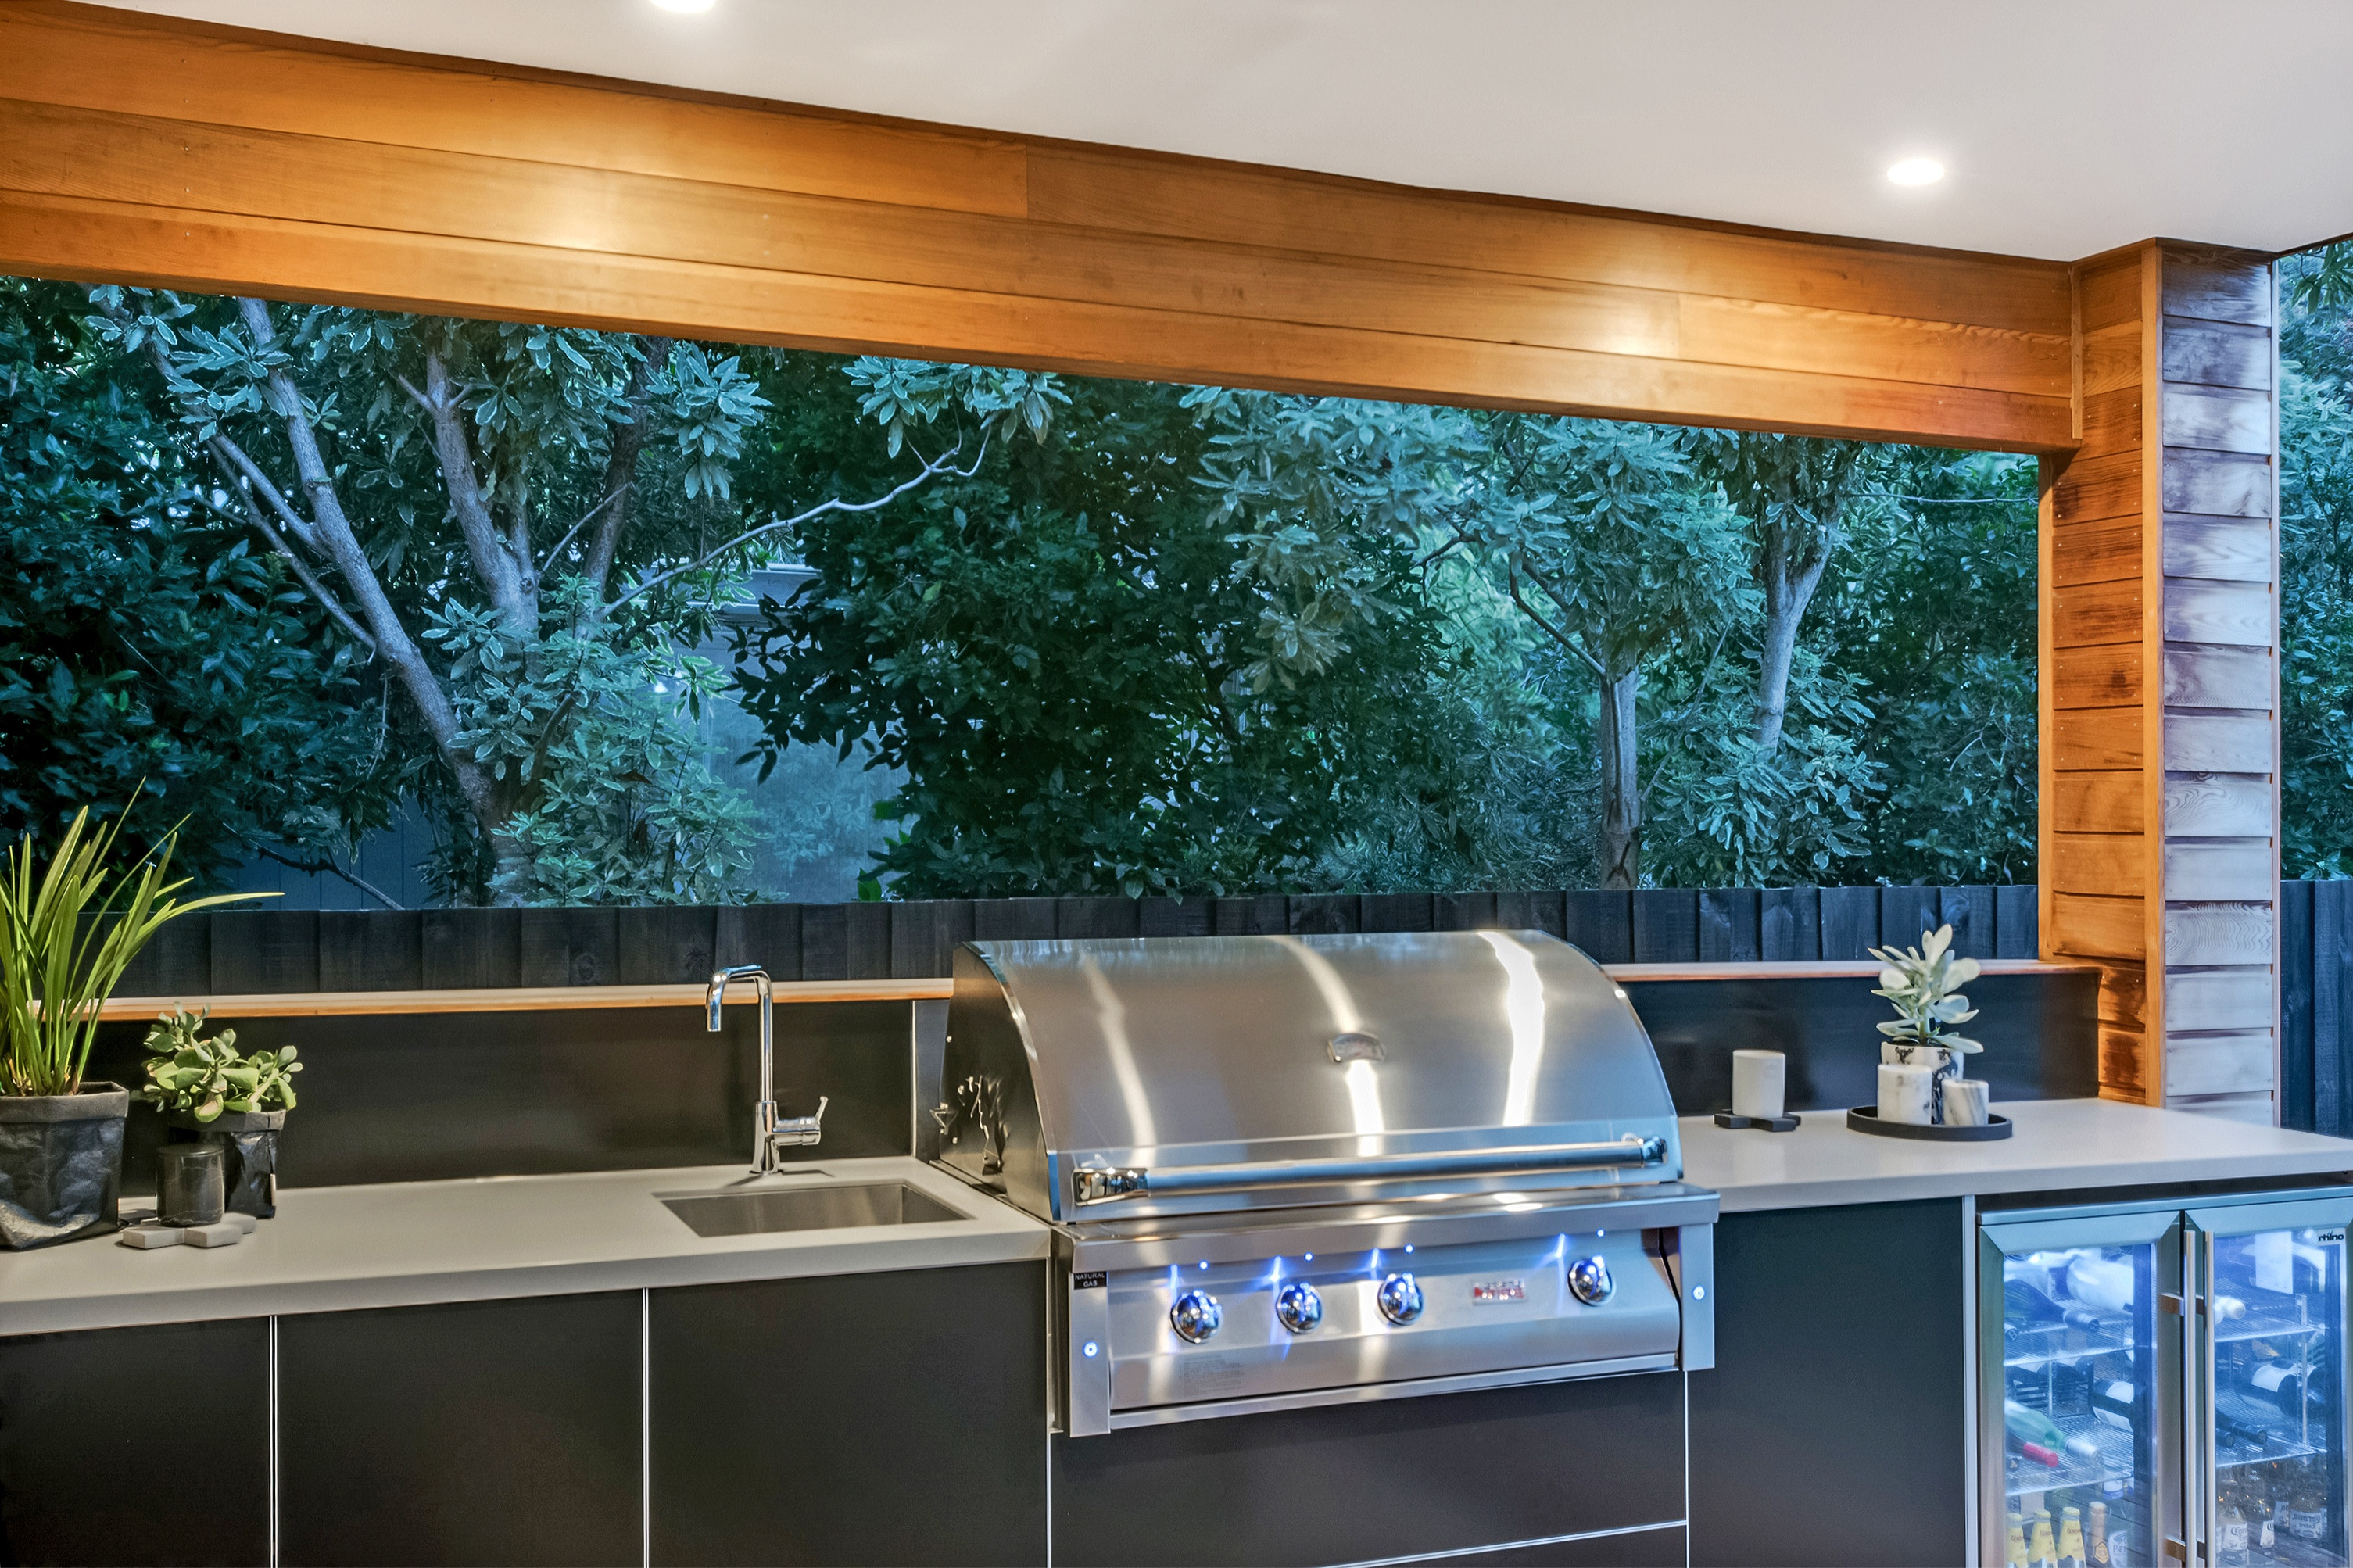 Limetree Alfresco Outdoor Kitchen